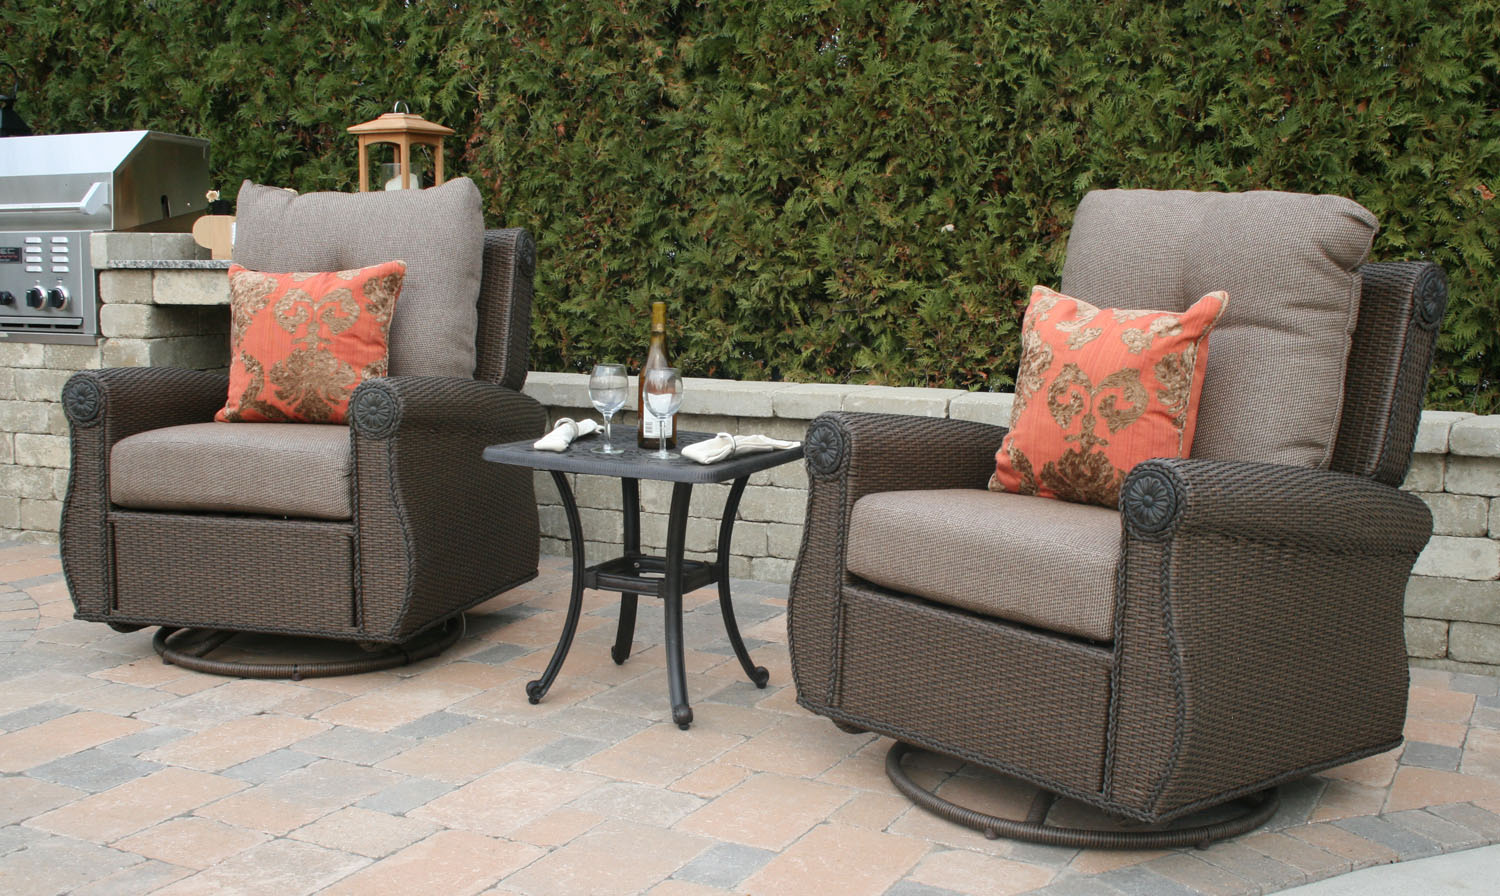 furniture options sets patio design wicker outdoor clearance set porch jbeedesigns